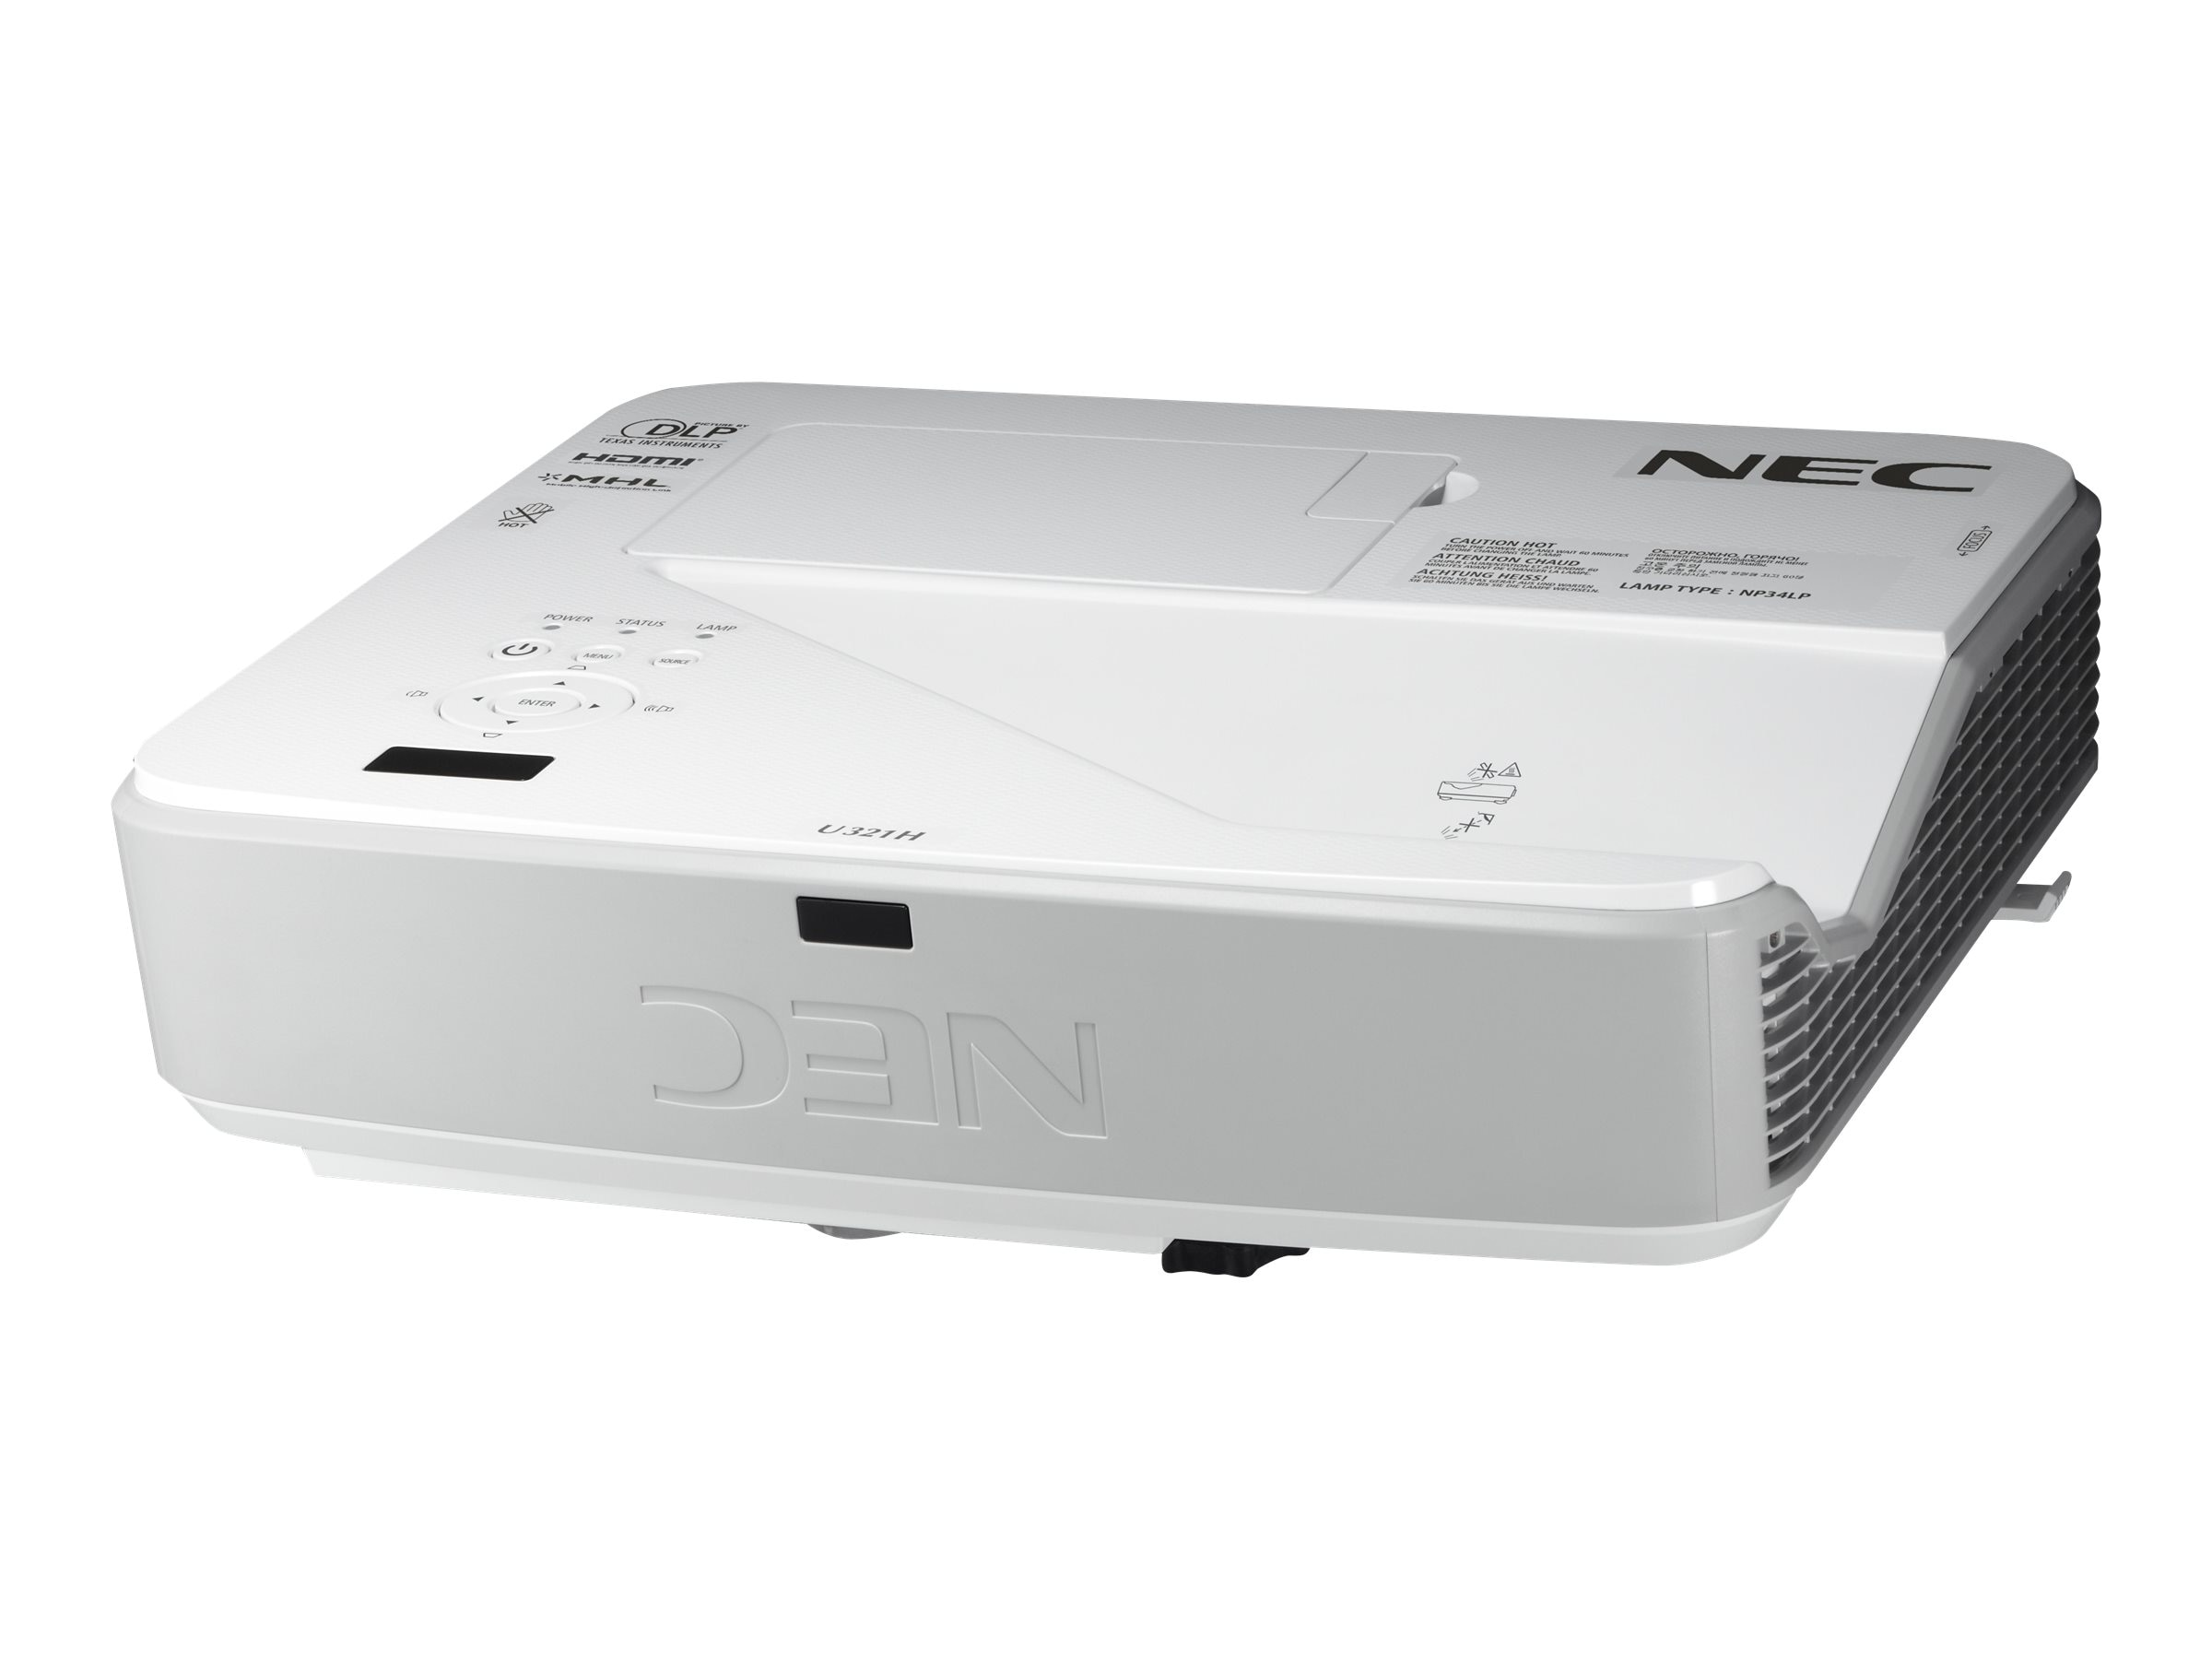 NEC U321H Full HD DLP Projector, 3200 Lumens, White